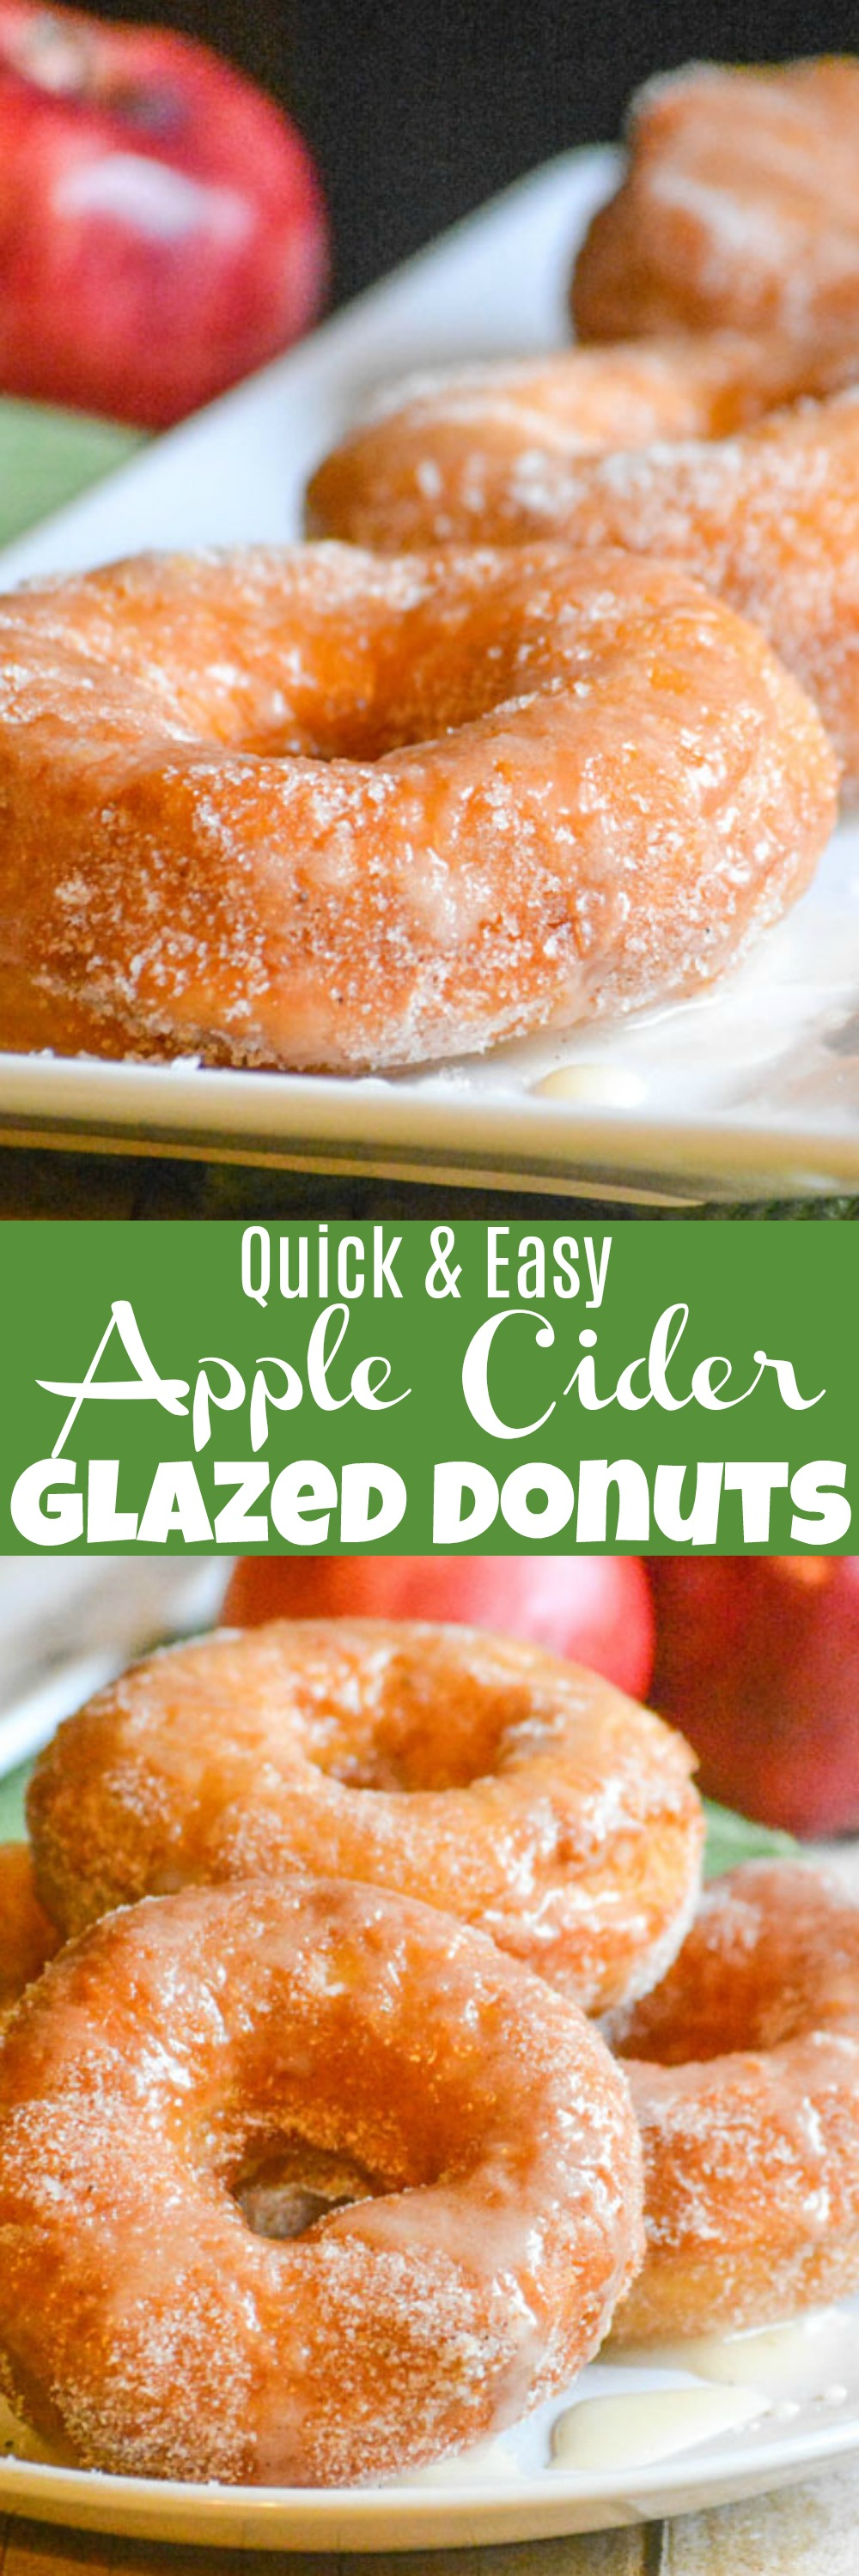 Homemade donuts have never been easier than with theseQuick & Easy Apple Cider Glazed Donuts. Tossed in a cinnamon sugar coating and drizzled with a warm apple cider glaze each bite is melt in your mouth perfection. They're the perfect way to celebrate one of your favorite Fall fruits.